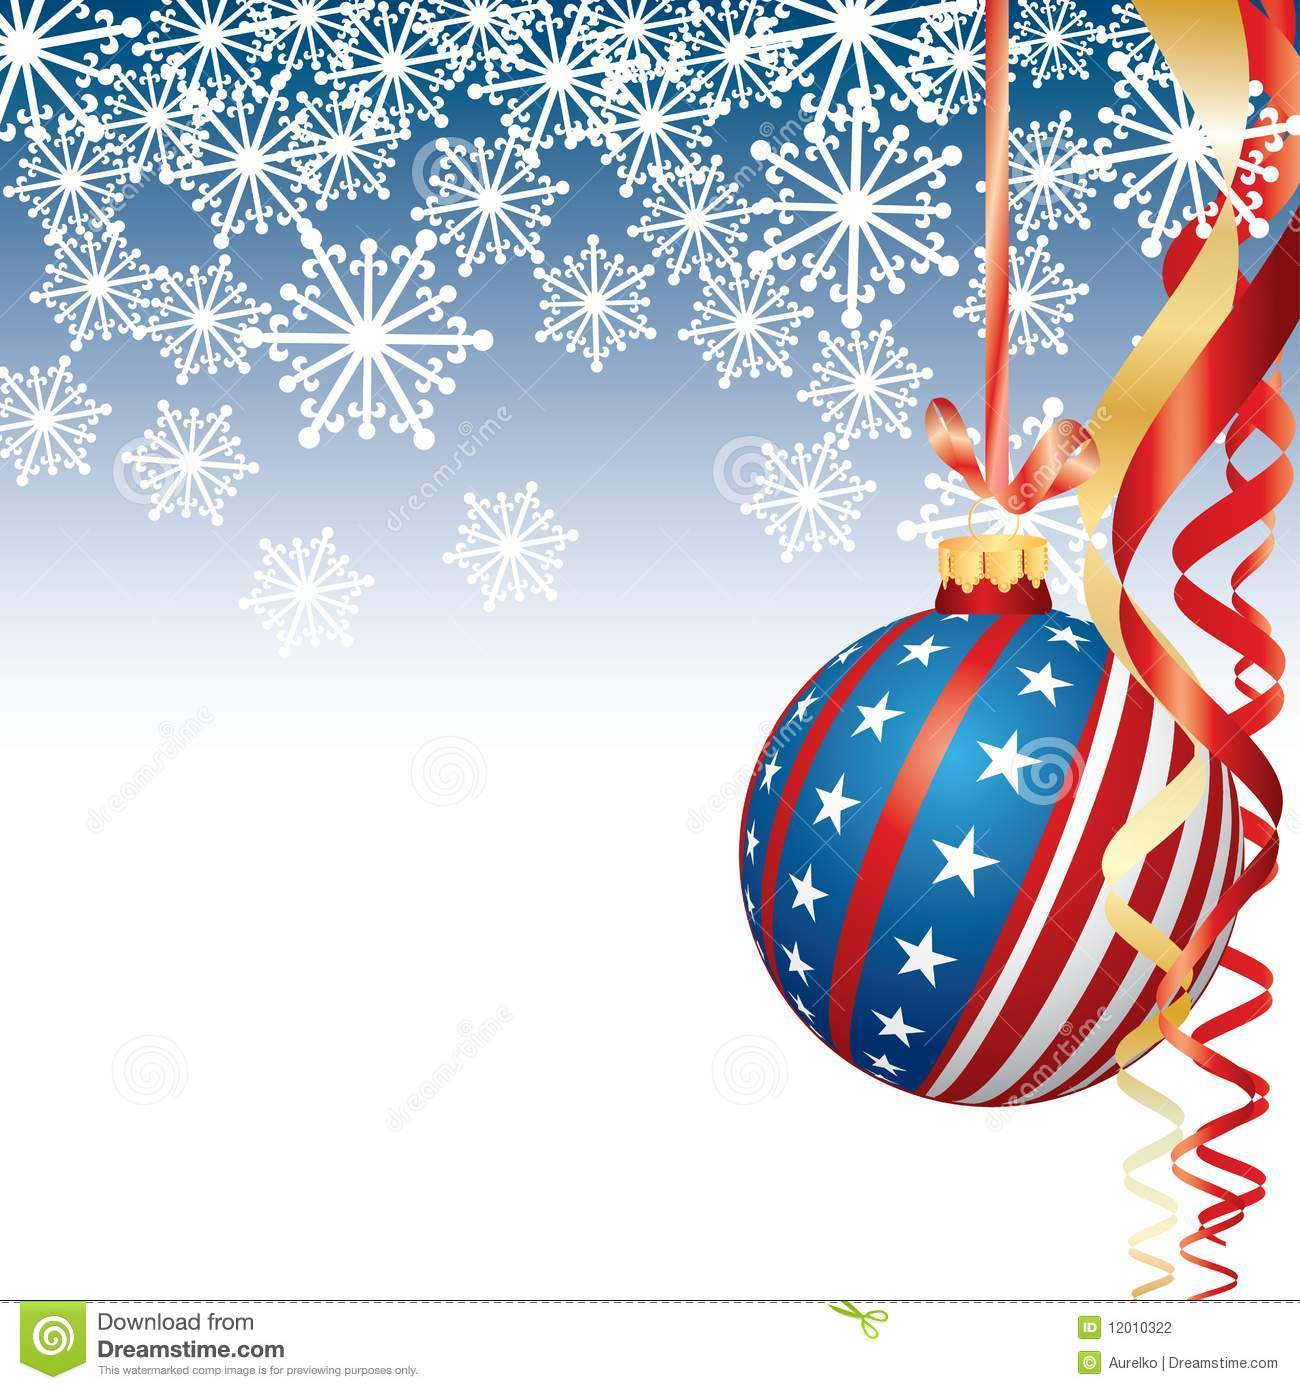 patriotic christmas stock vector illustration of concepts 12010322